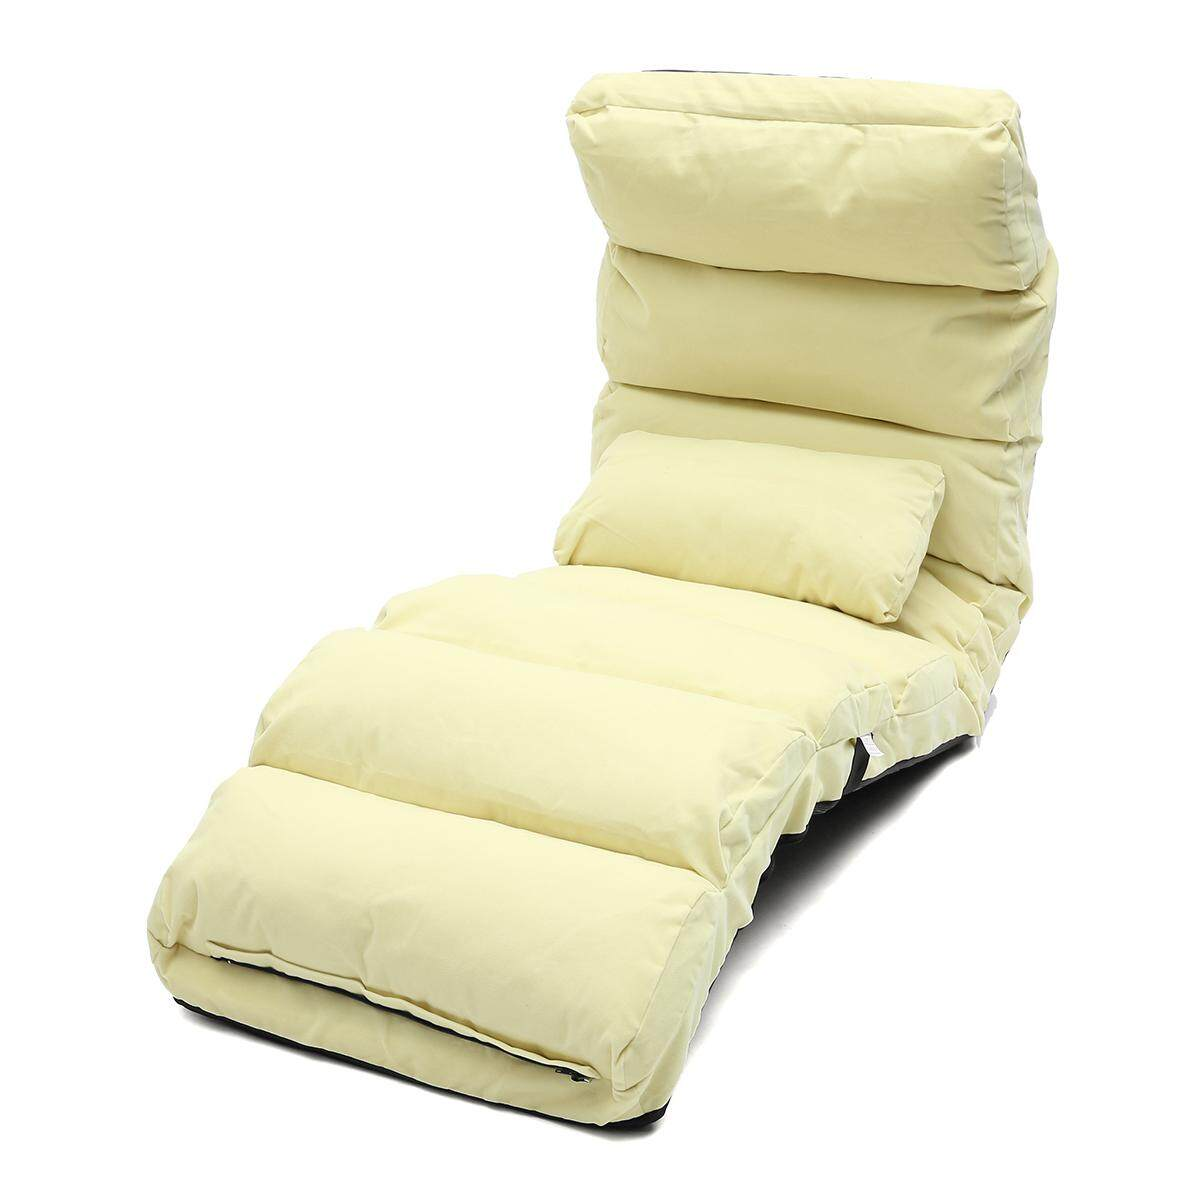 Lounge Sofa Bed Floor Recliner Folding Chaise Chair Adjustable Foldable AU Home Beige (Standard Size)